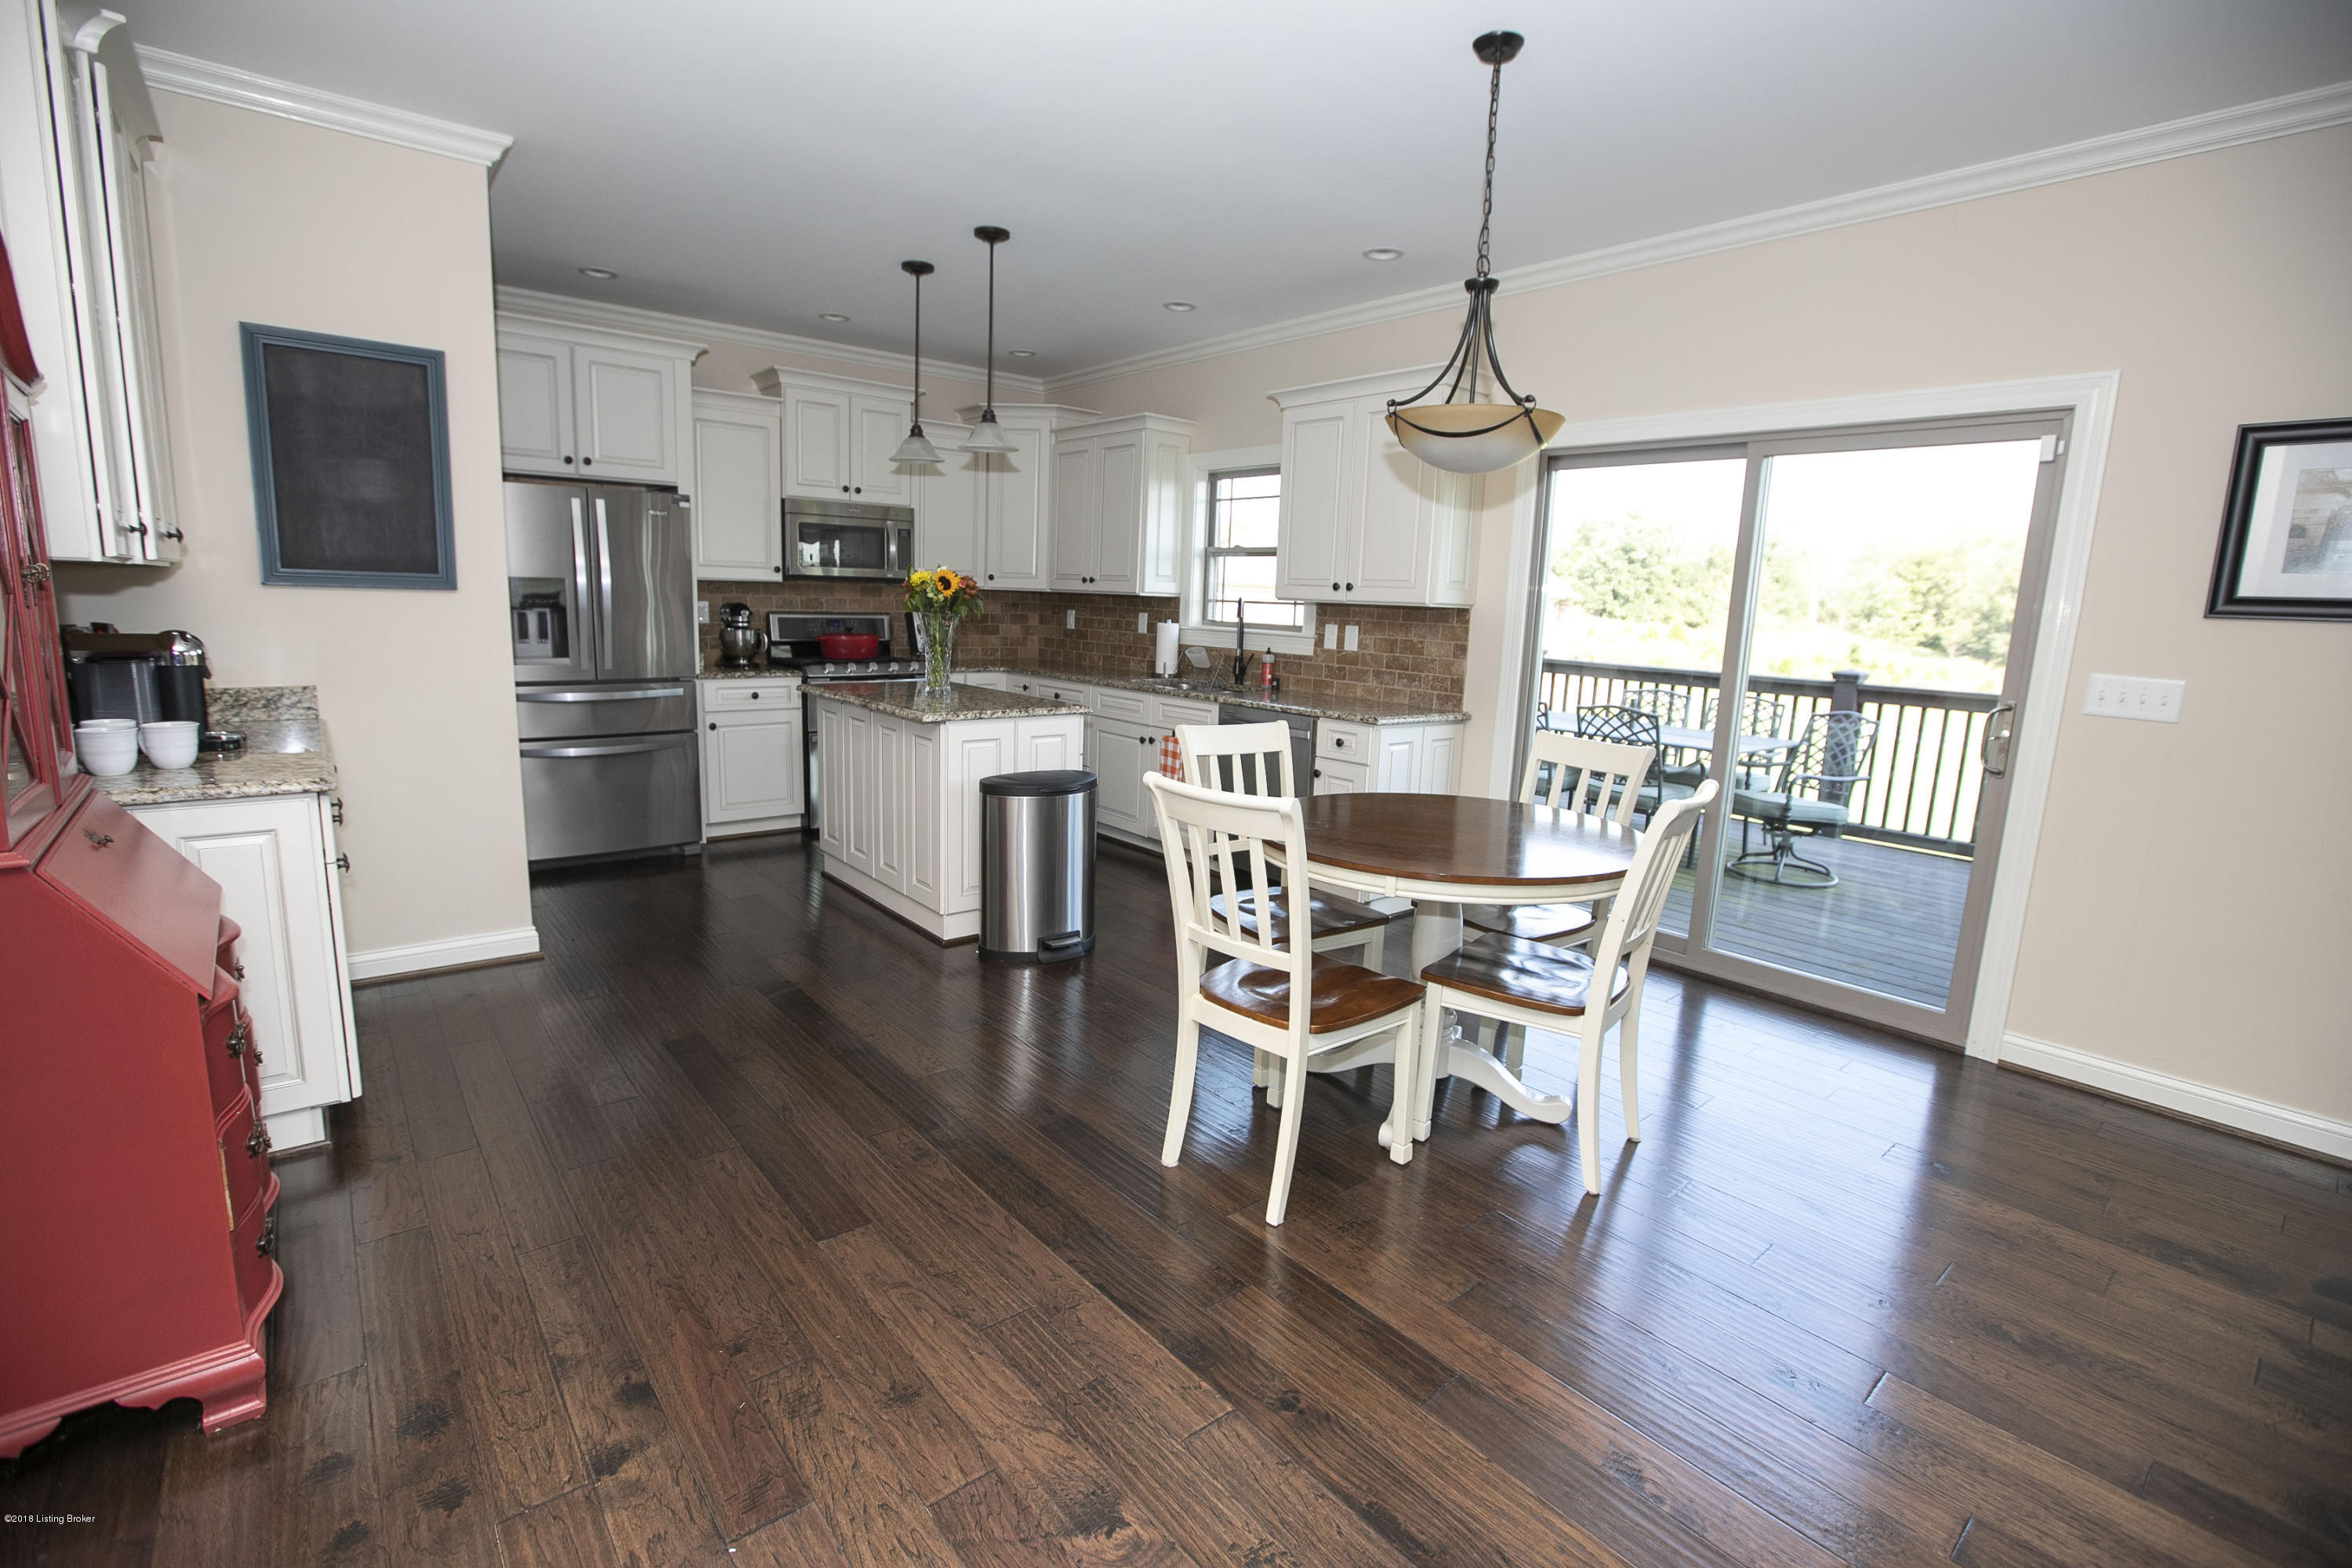 engineered hardwood flooring louisville ky of 6000 ridge ct la grange kentucky intended for gallery image